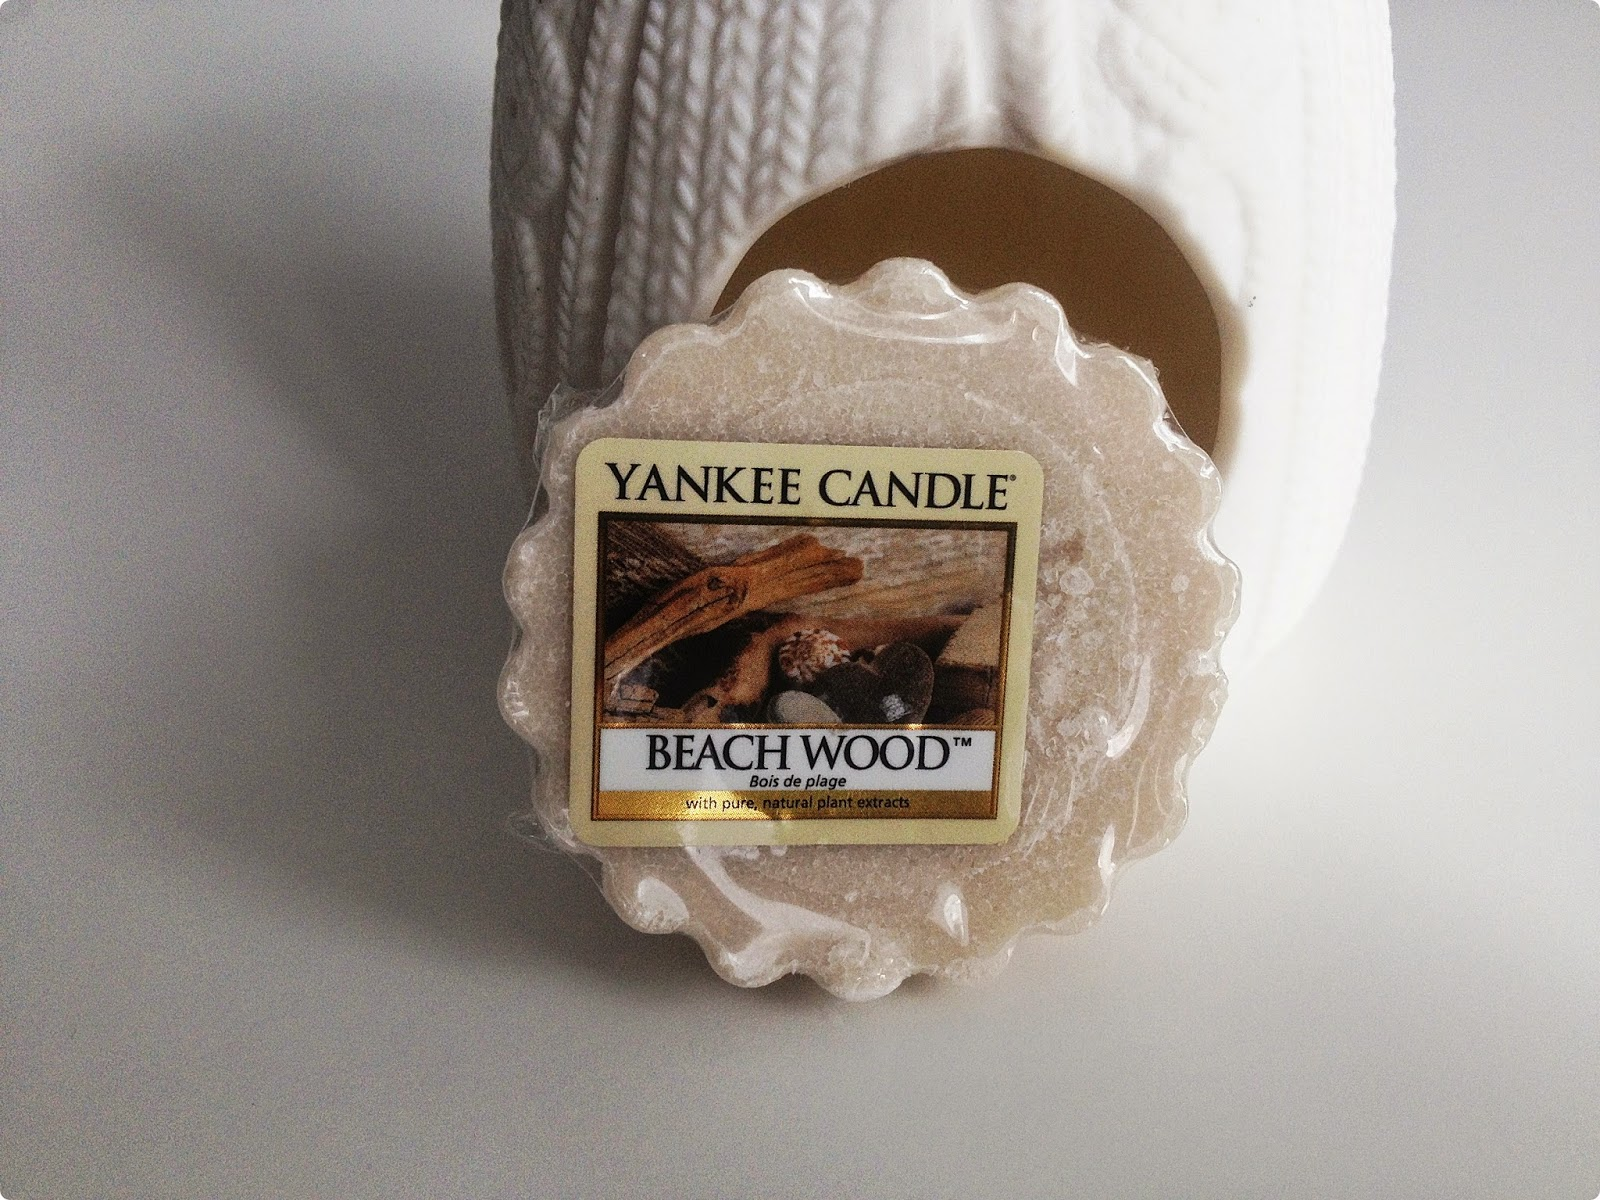 Beach Wood, Yankee Candle